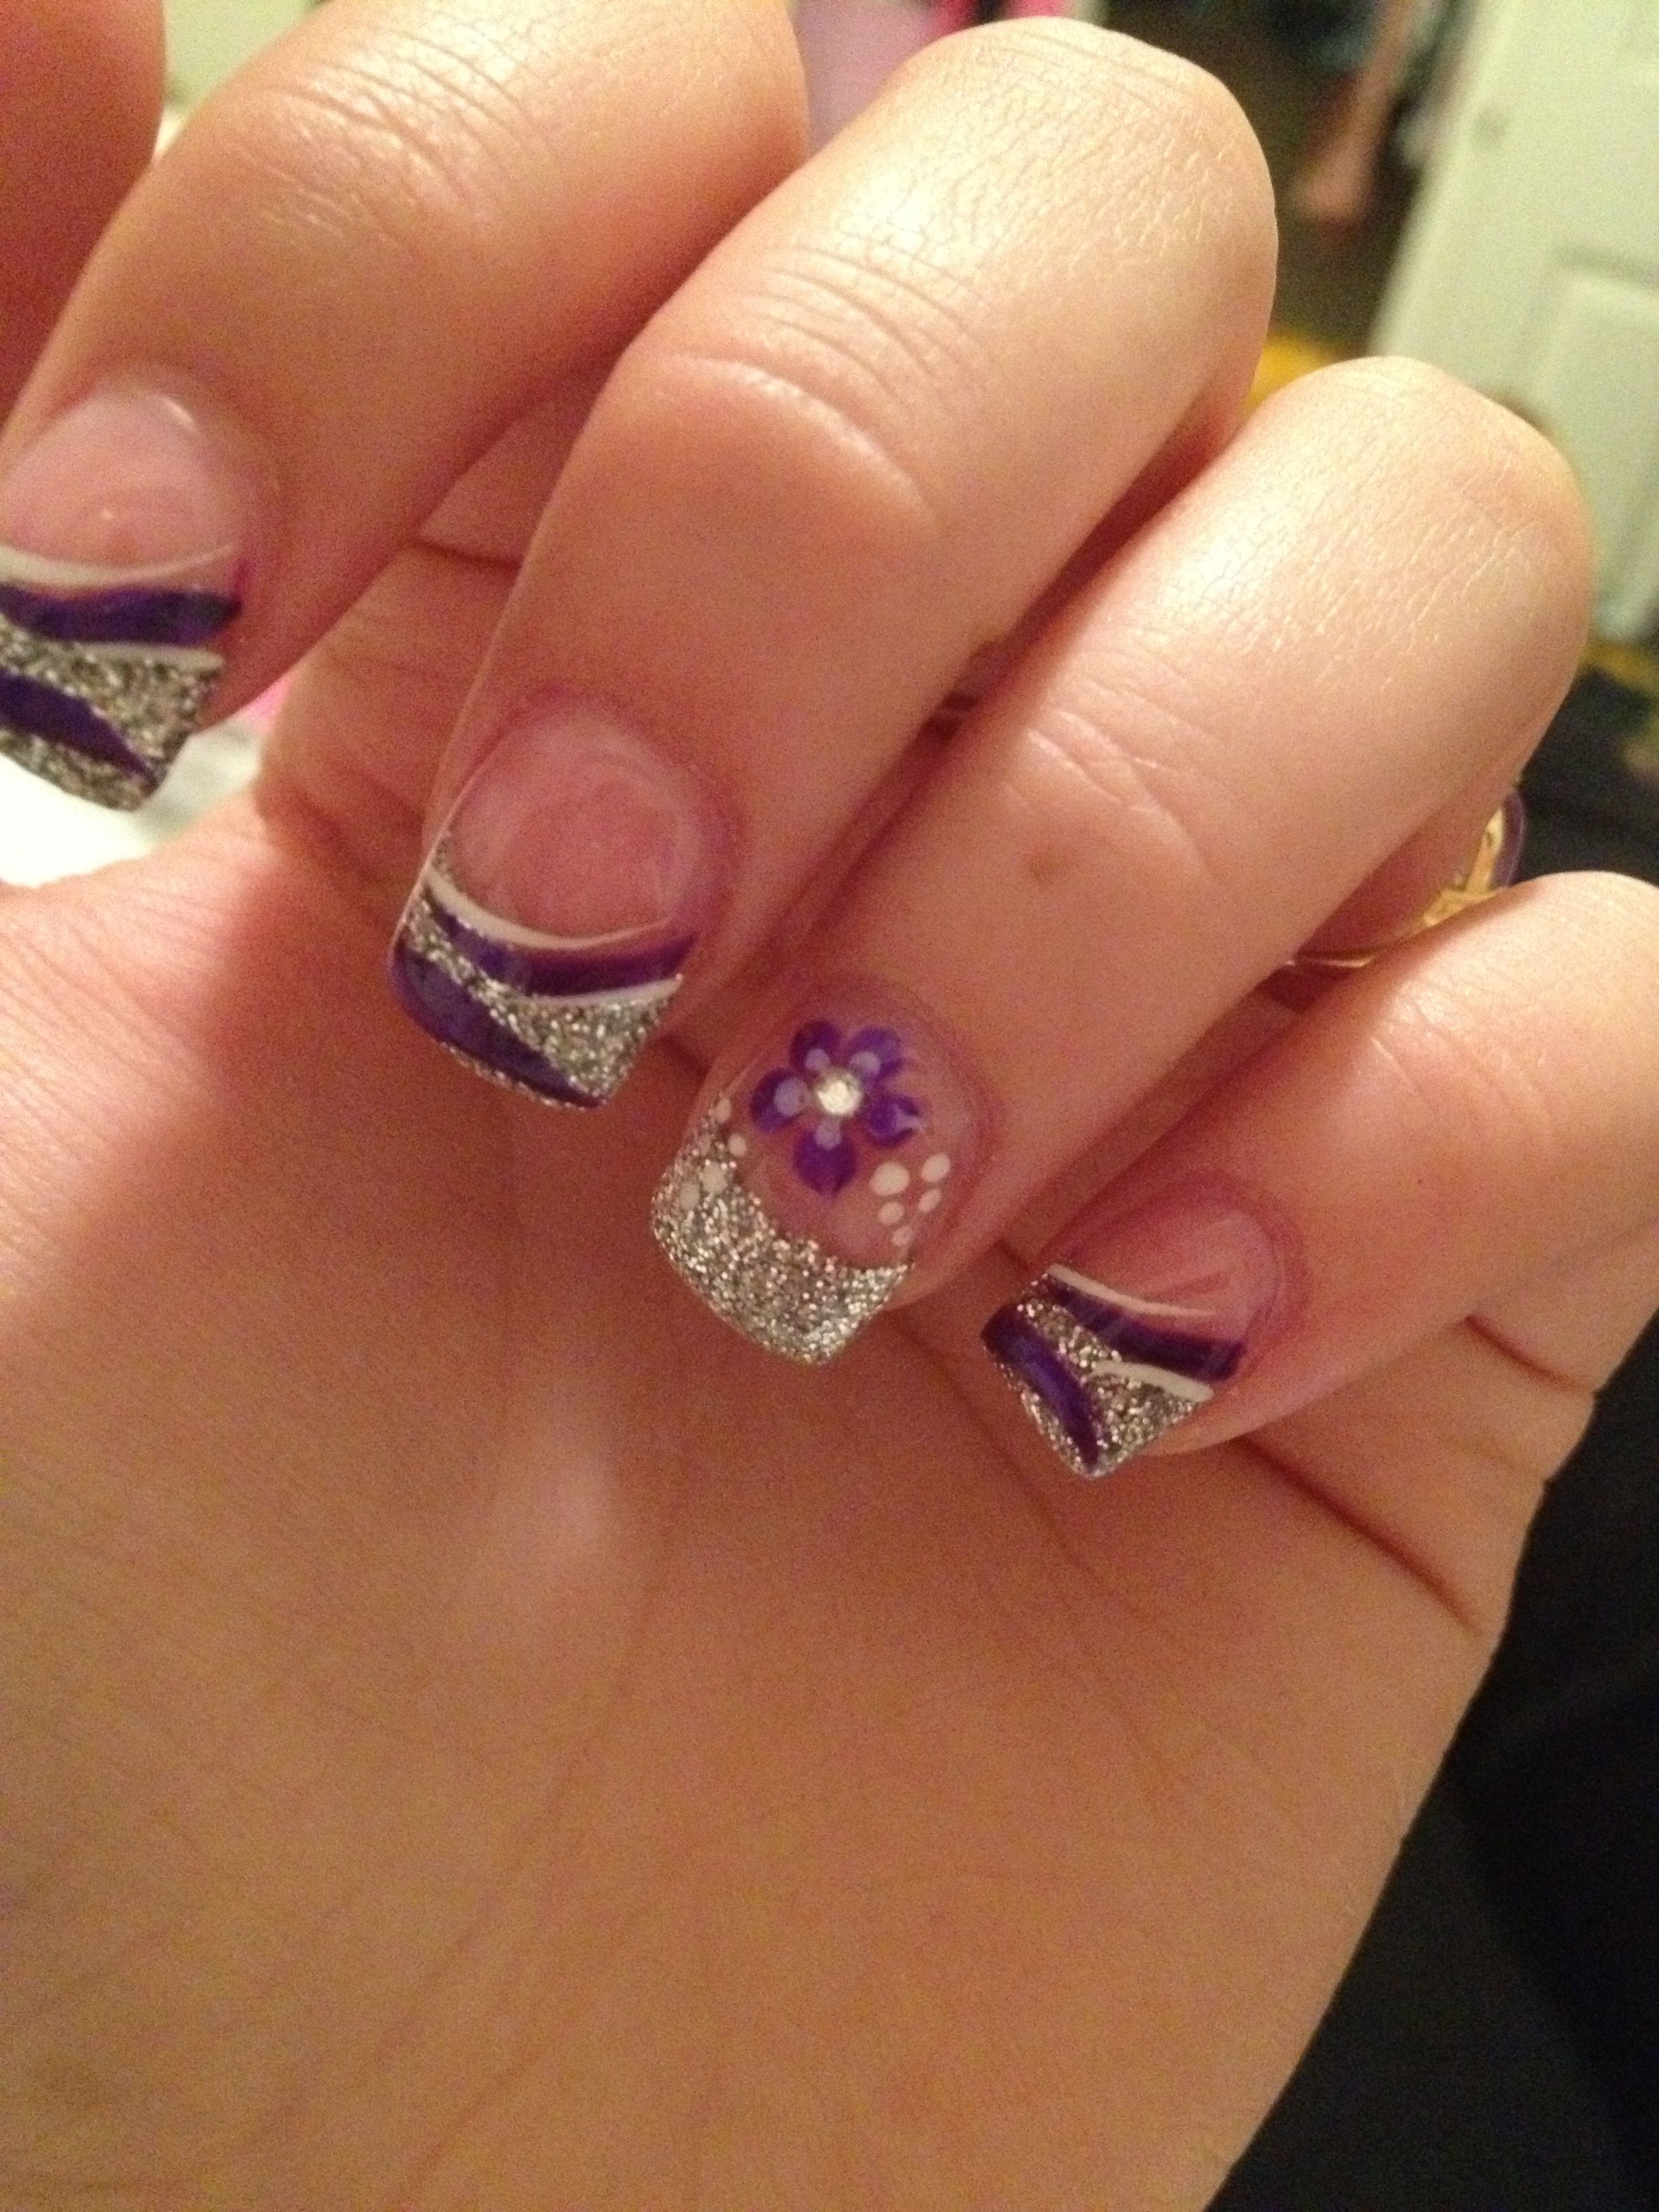 Prom acrylic nails idea my two favorite colors XD Stuff to Try